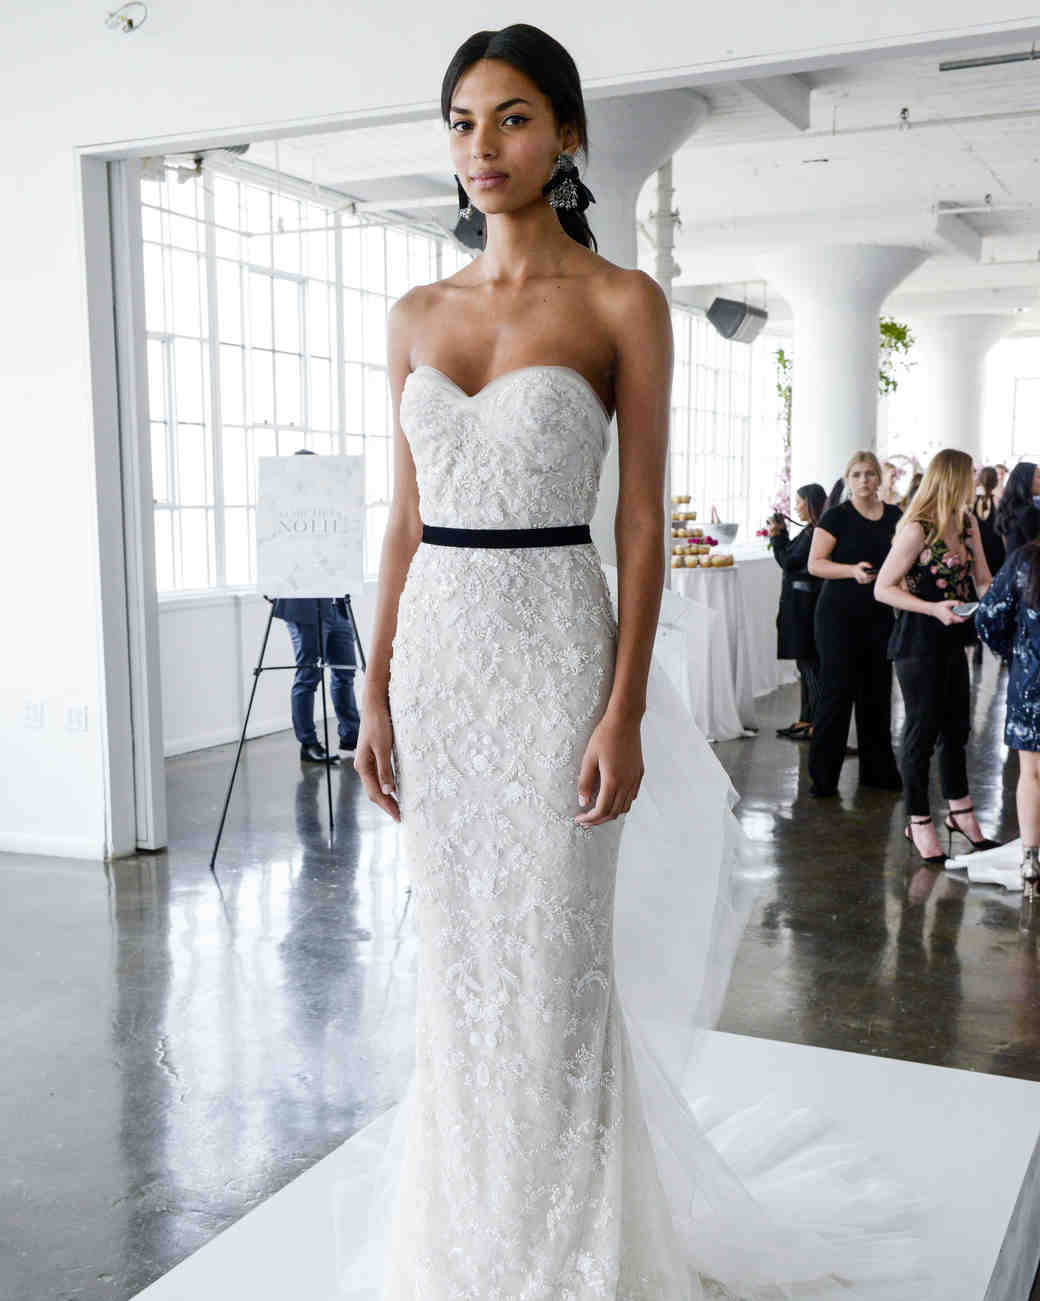 10 Wedding Dress Trends From Spring 2018 Bridal Fashion